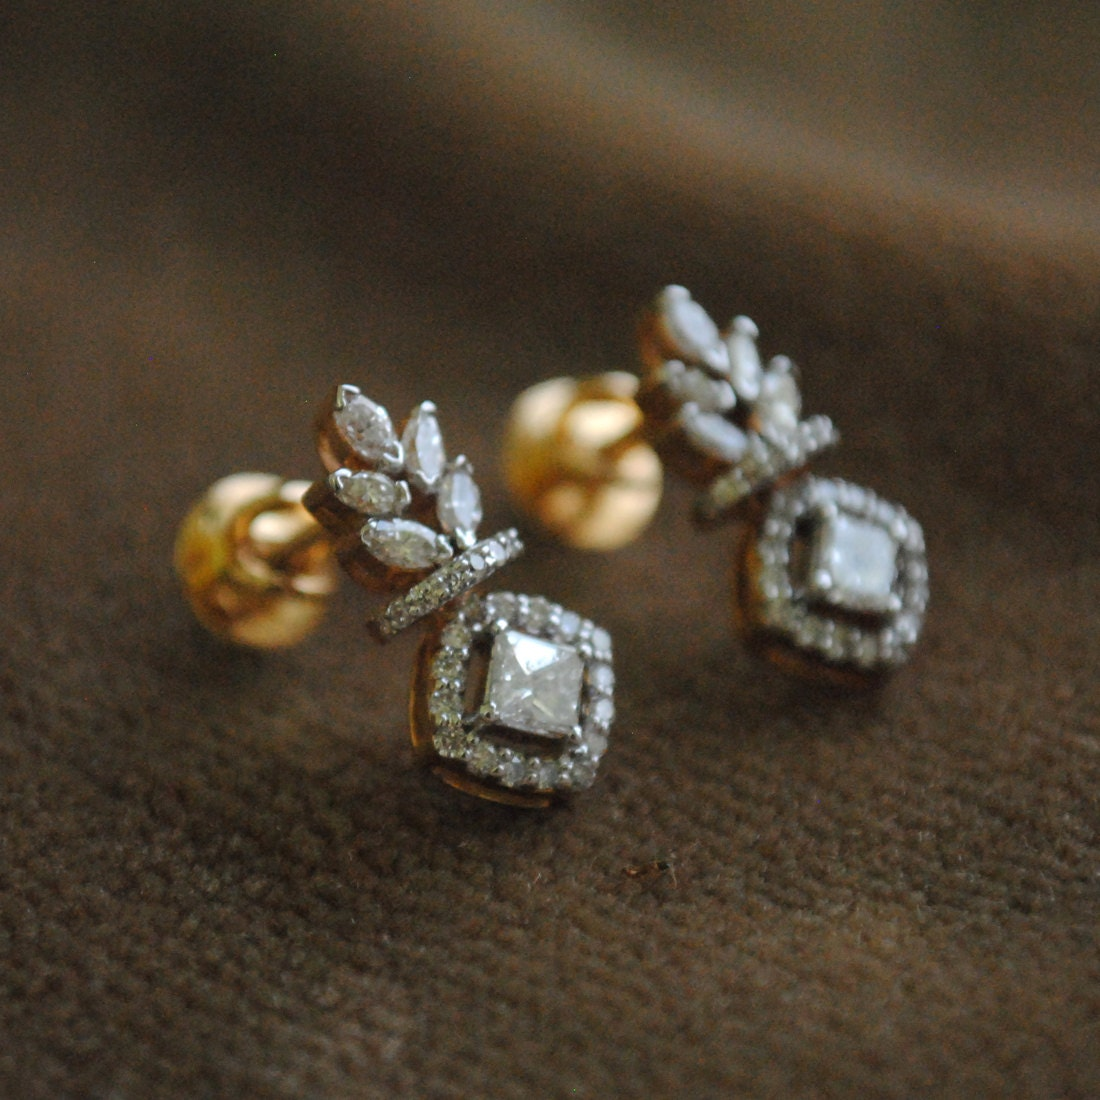 rockrush at in buy jewellery prices nakshatra india online diamond tops best yd earrings